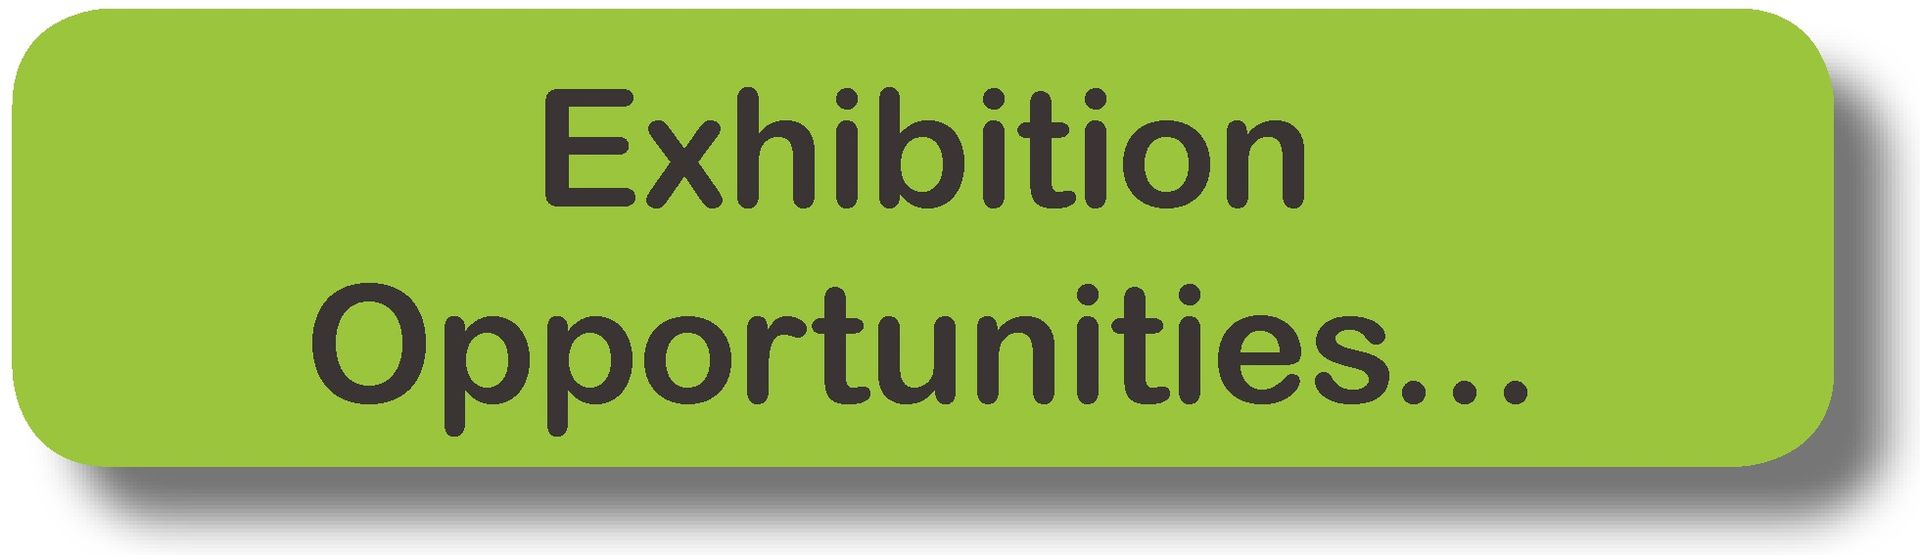 Exhibition Opportunities